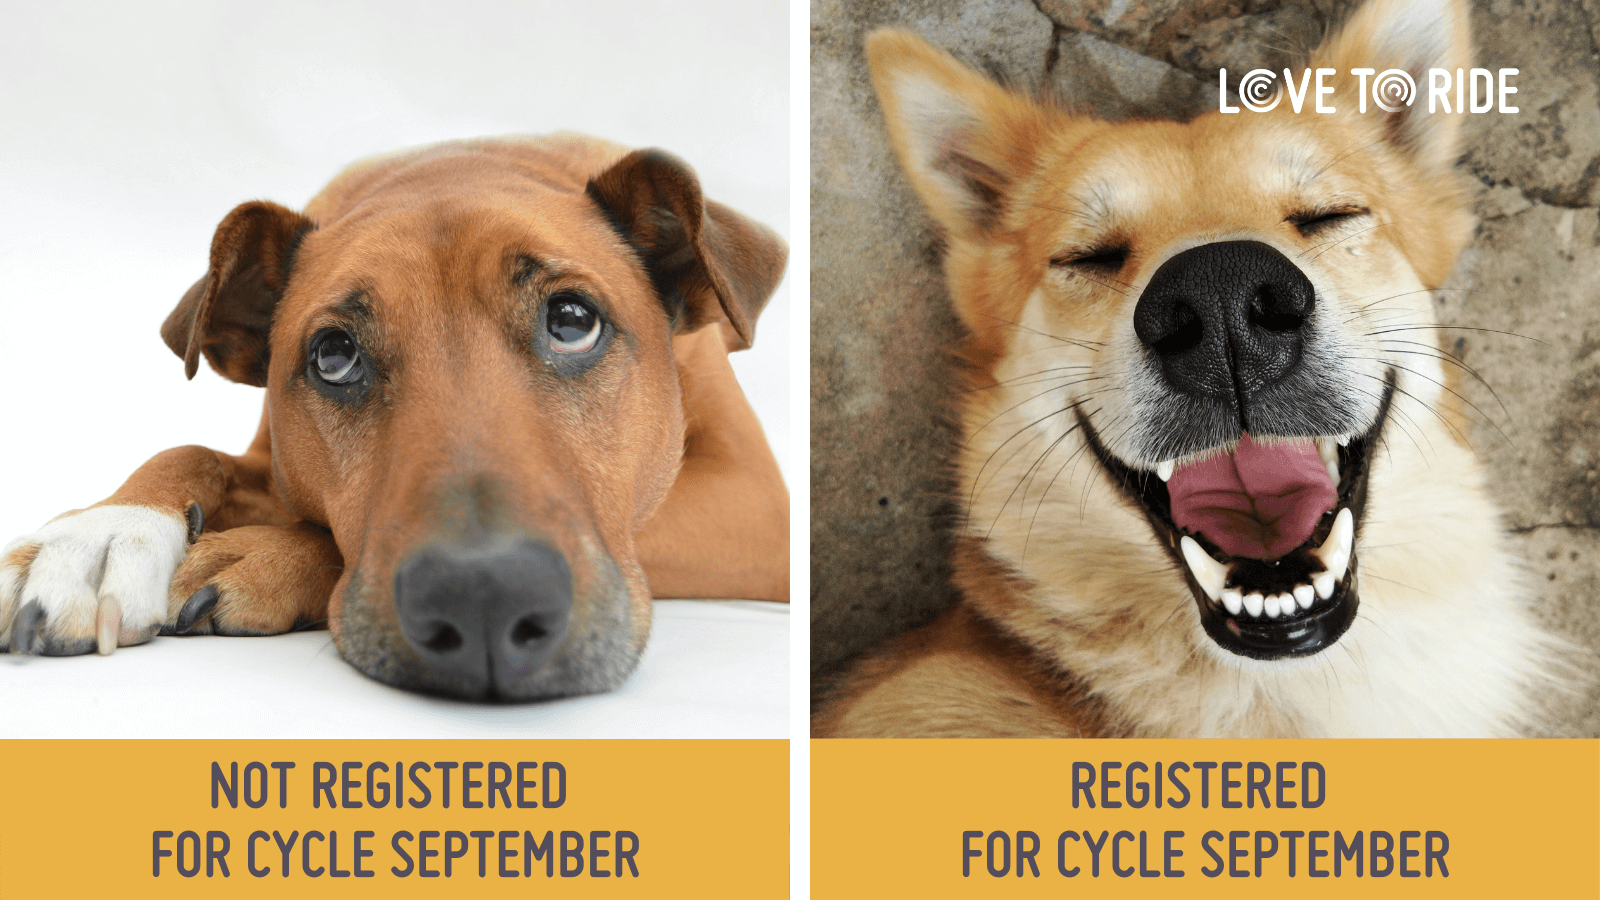 On the left, a dog lying down looking sad and bored. Underneath it says 'not registered for Cycle September'. On the right, a dog with a wide open mouth which gives the impression of a big smile. Underneath it says 'registered for Cycle September'.